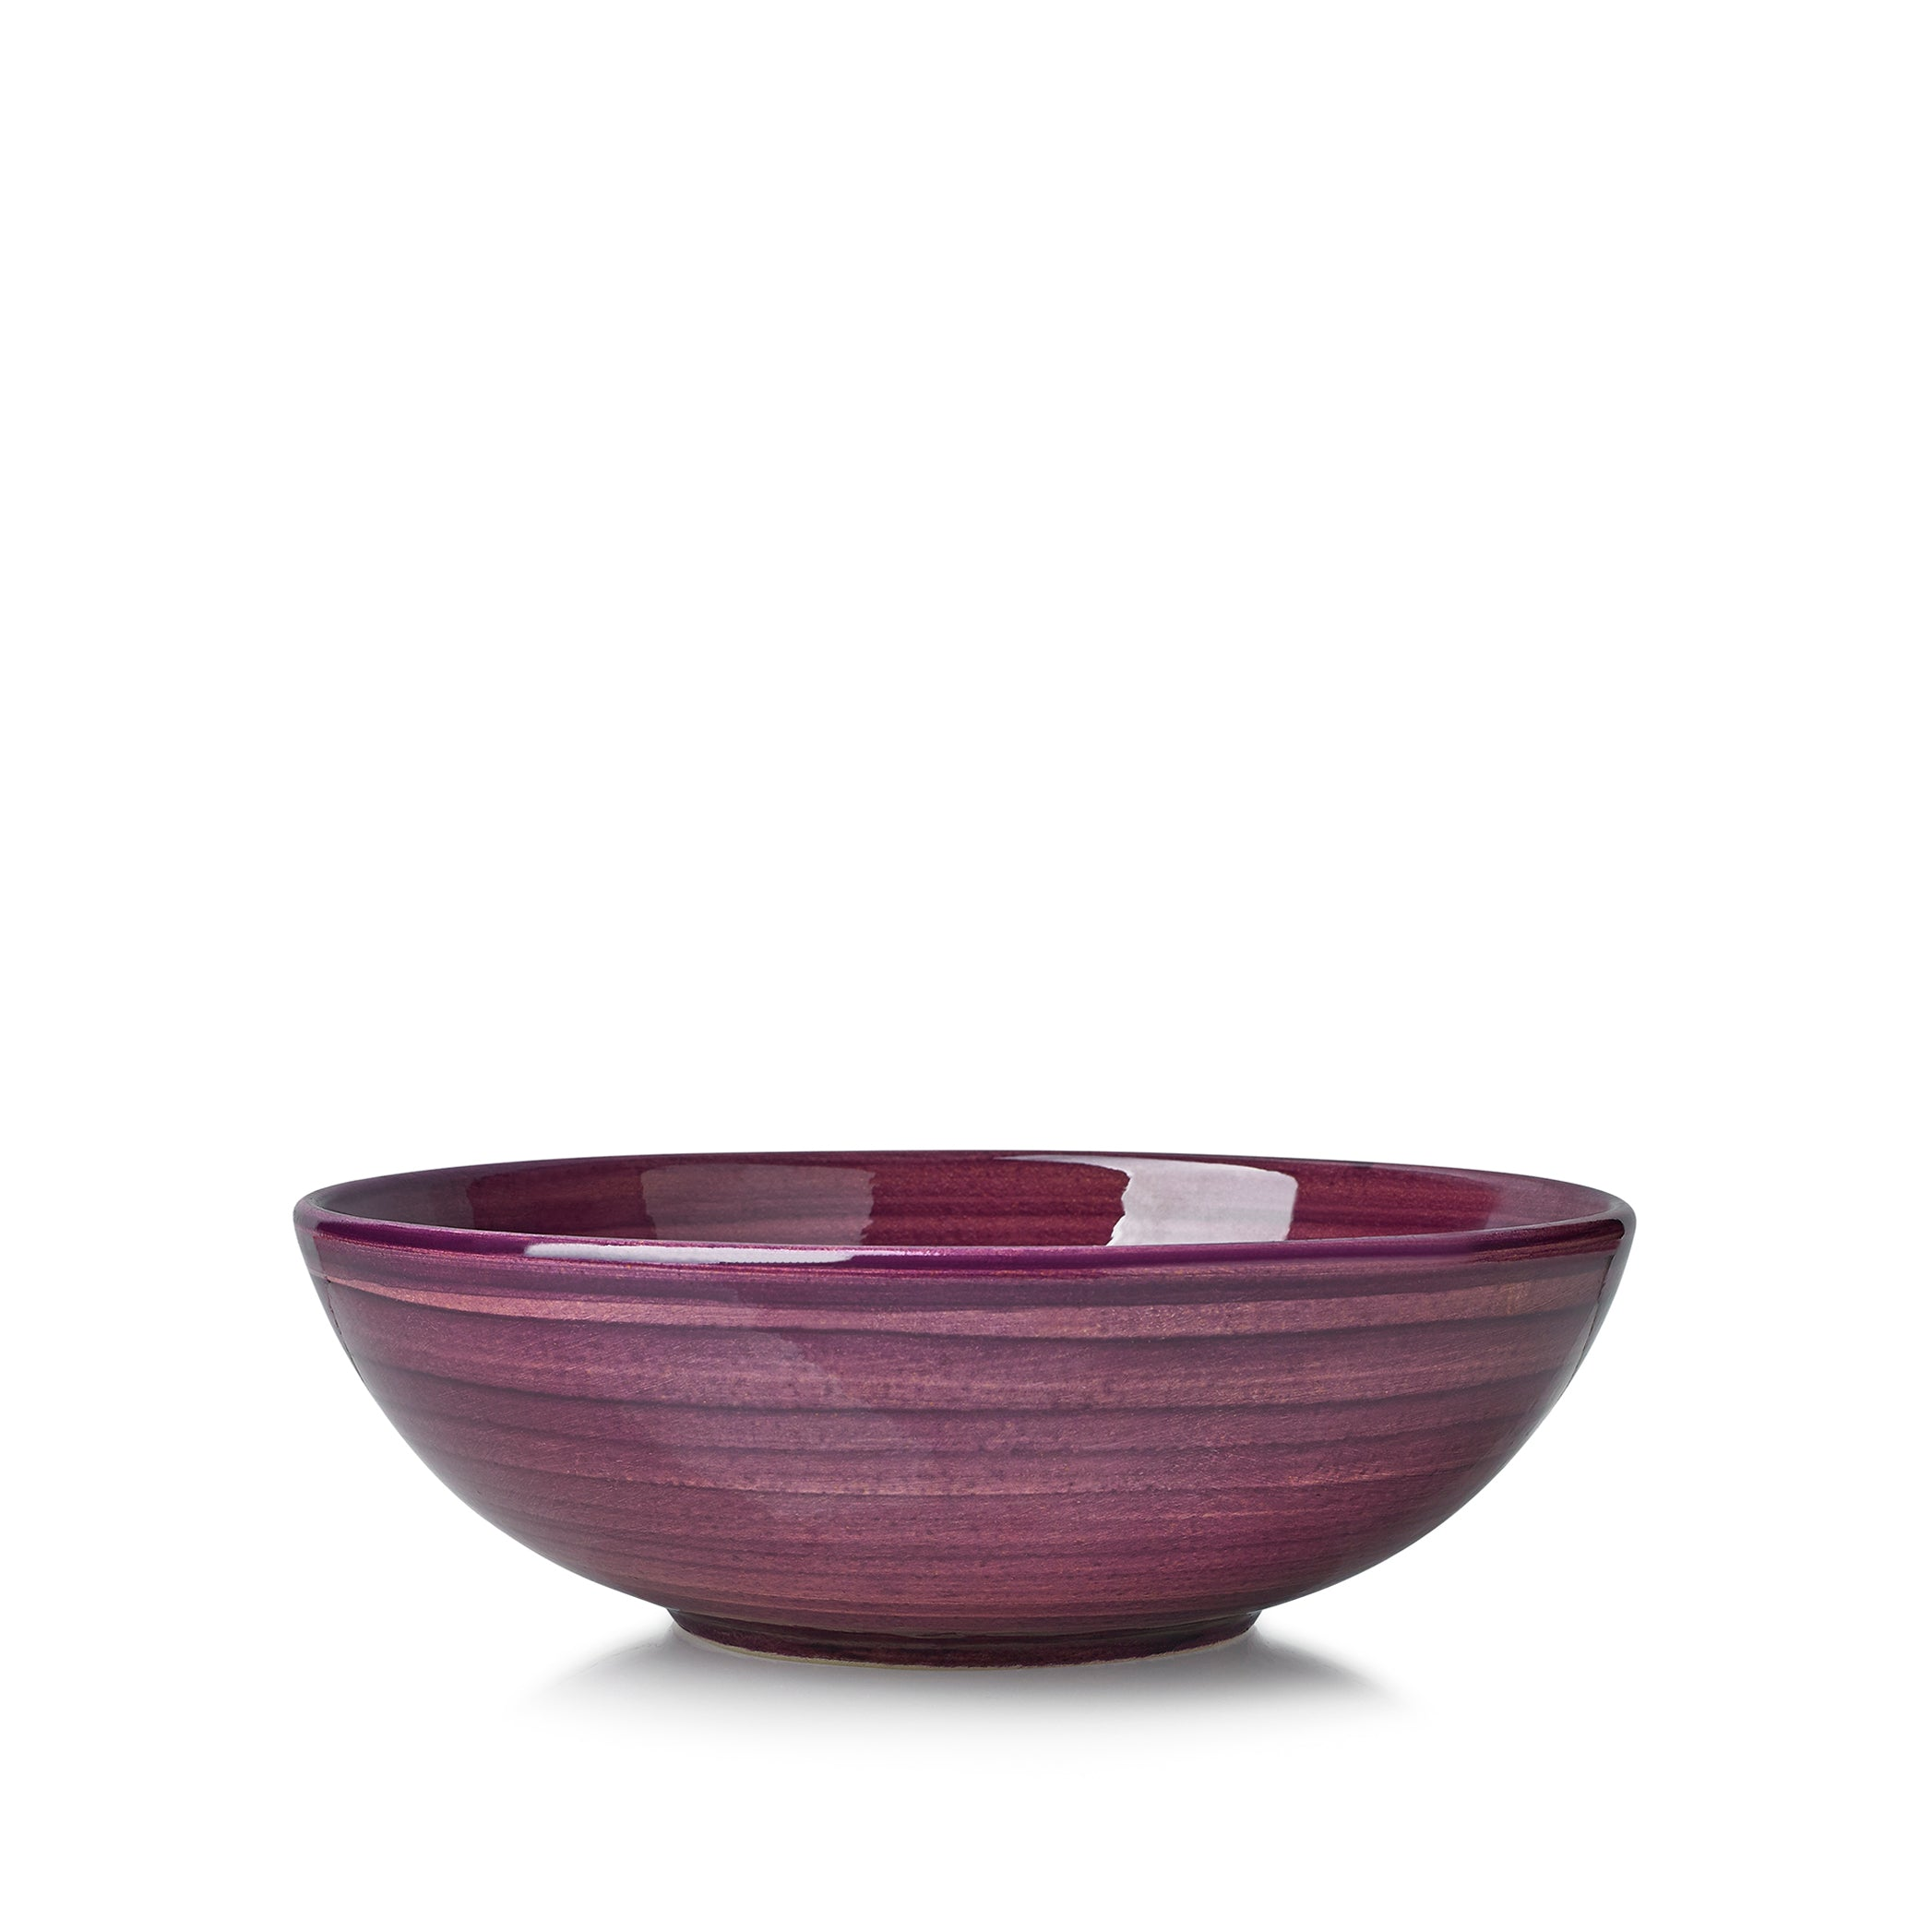 "S&B ""La Couronne"" 18.5cm Ceramic Soup Bowl in Purple"